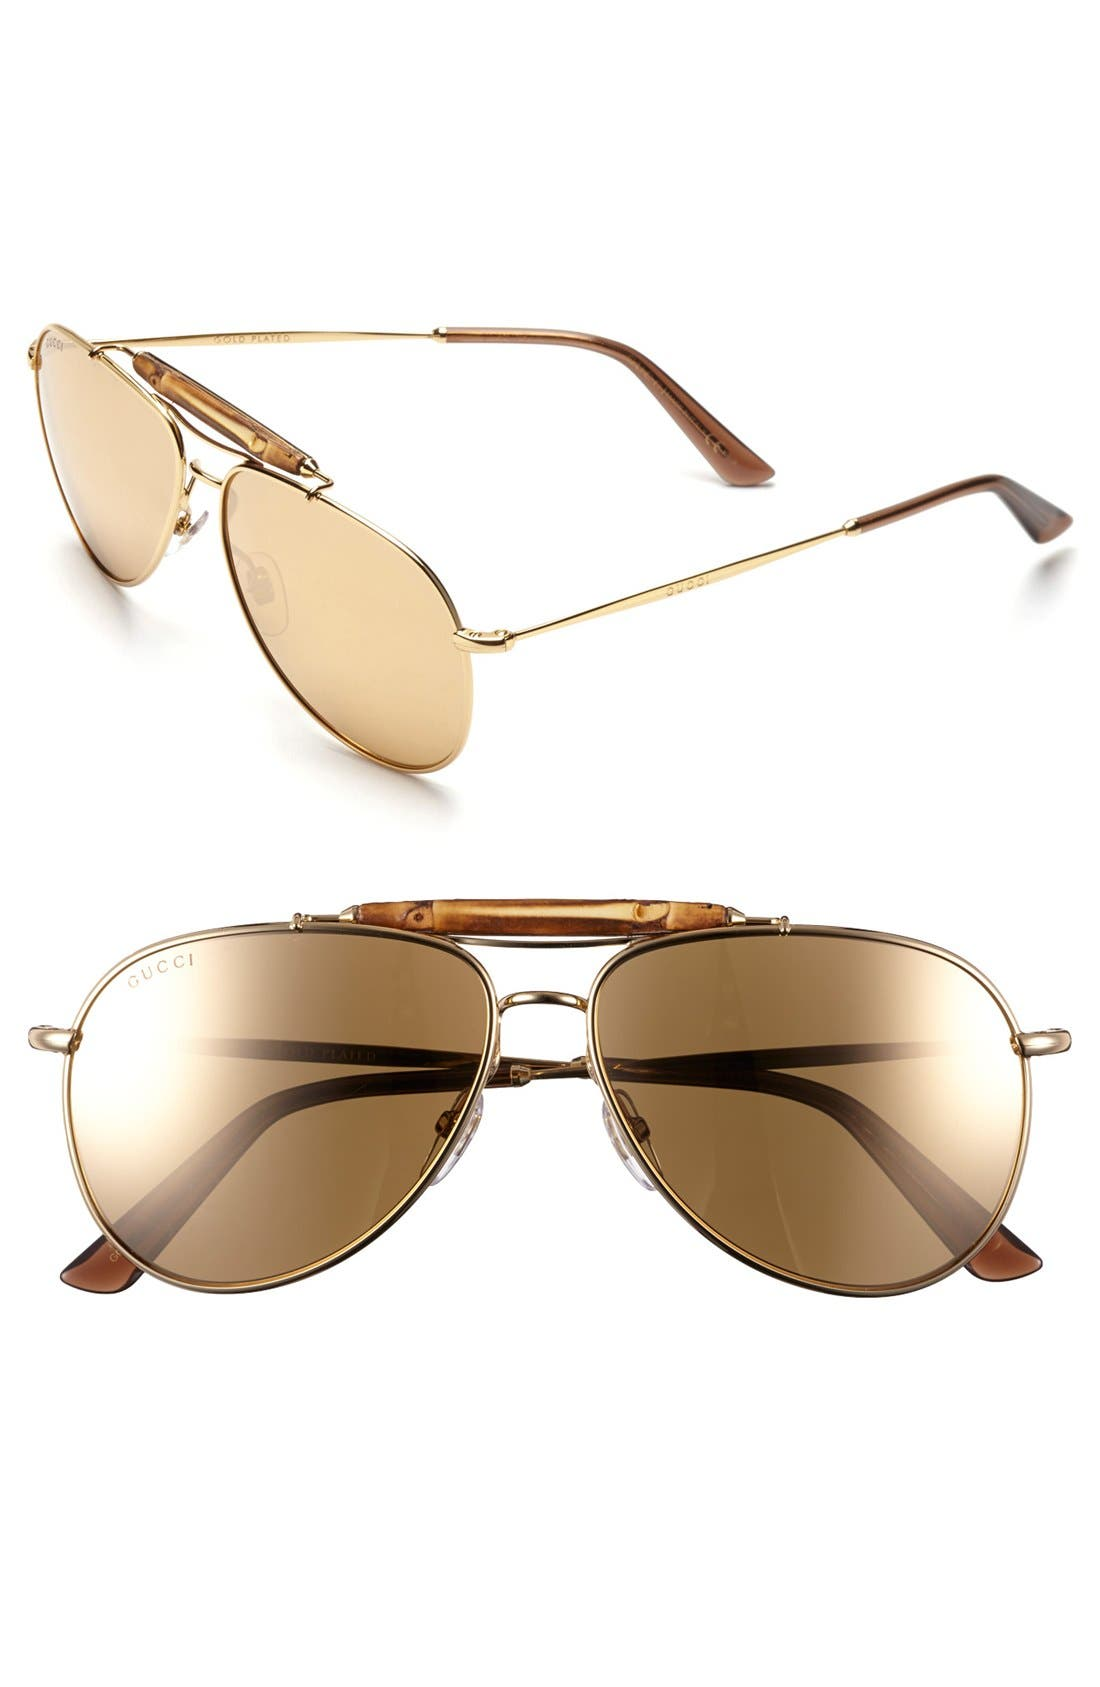 Alternate Image 1 Selected - Gucci 58mm Aviator Sunglasses